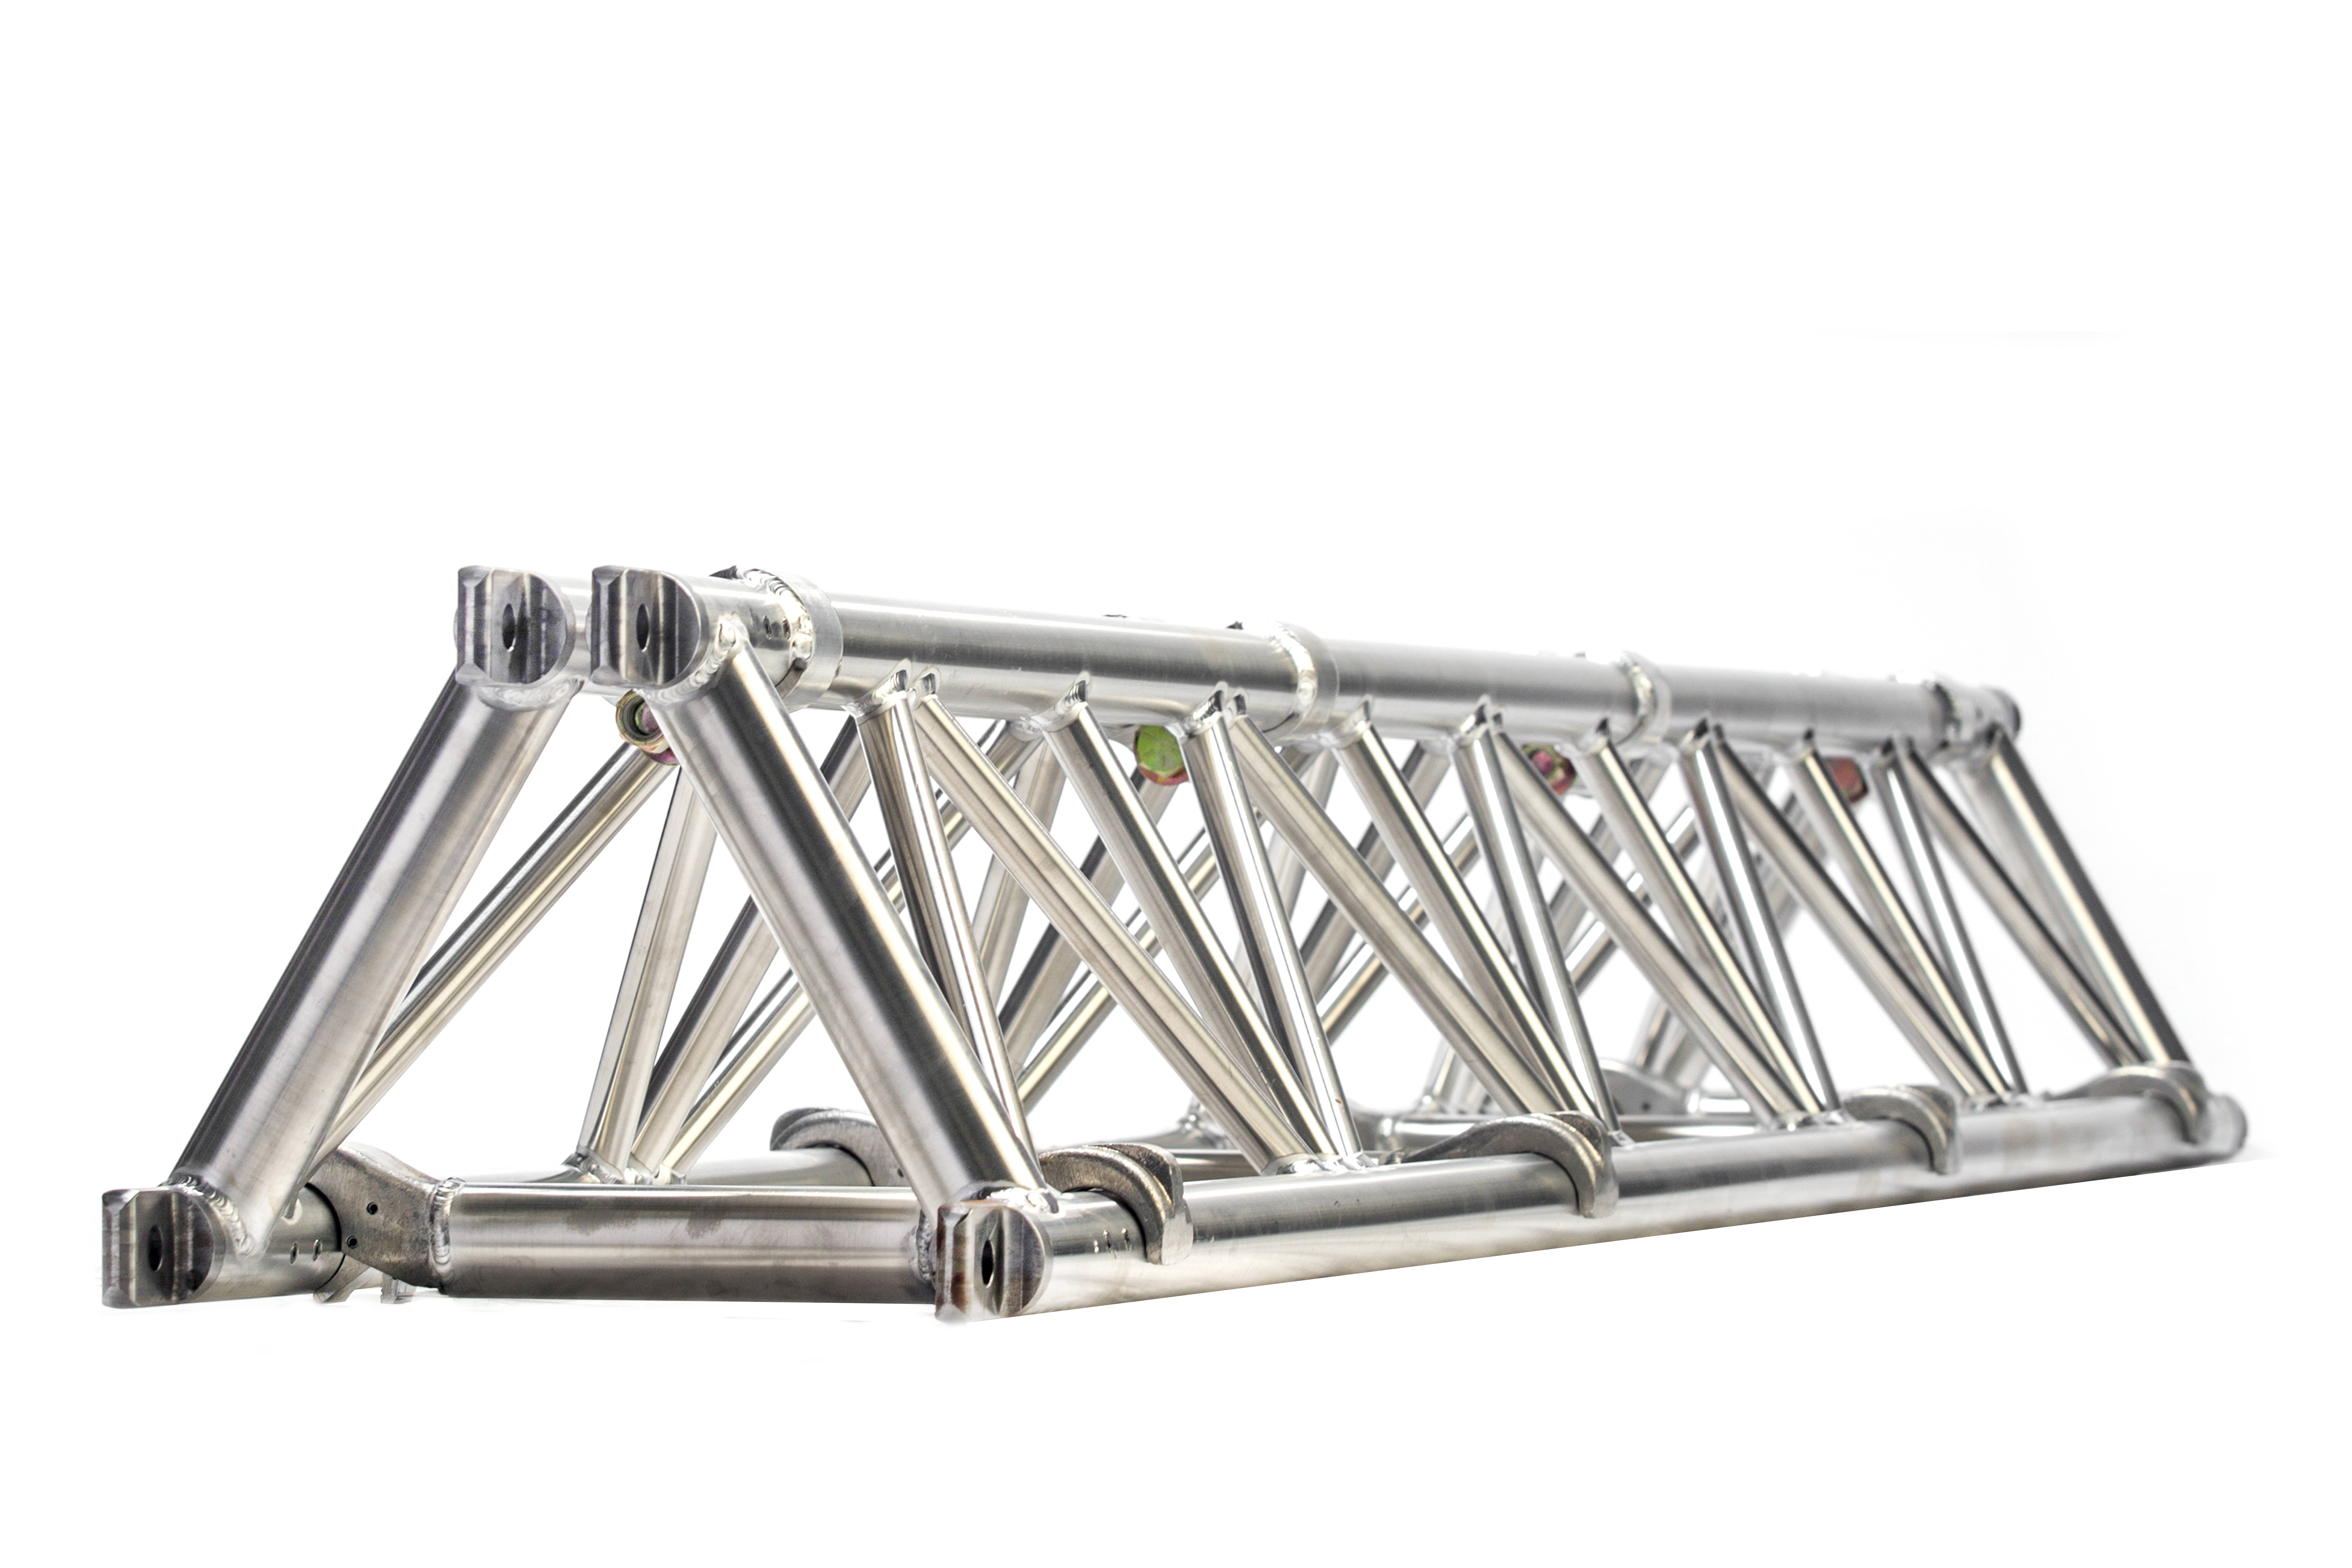 Folding triangle truss 14 spigoted